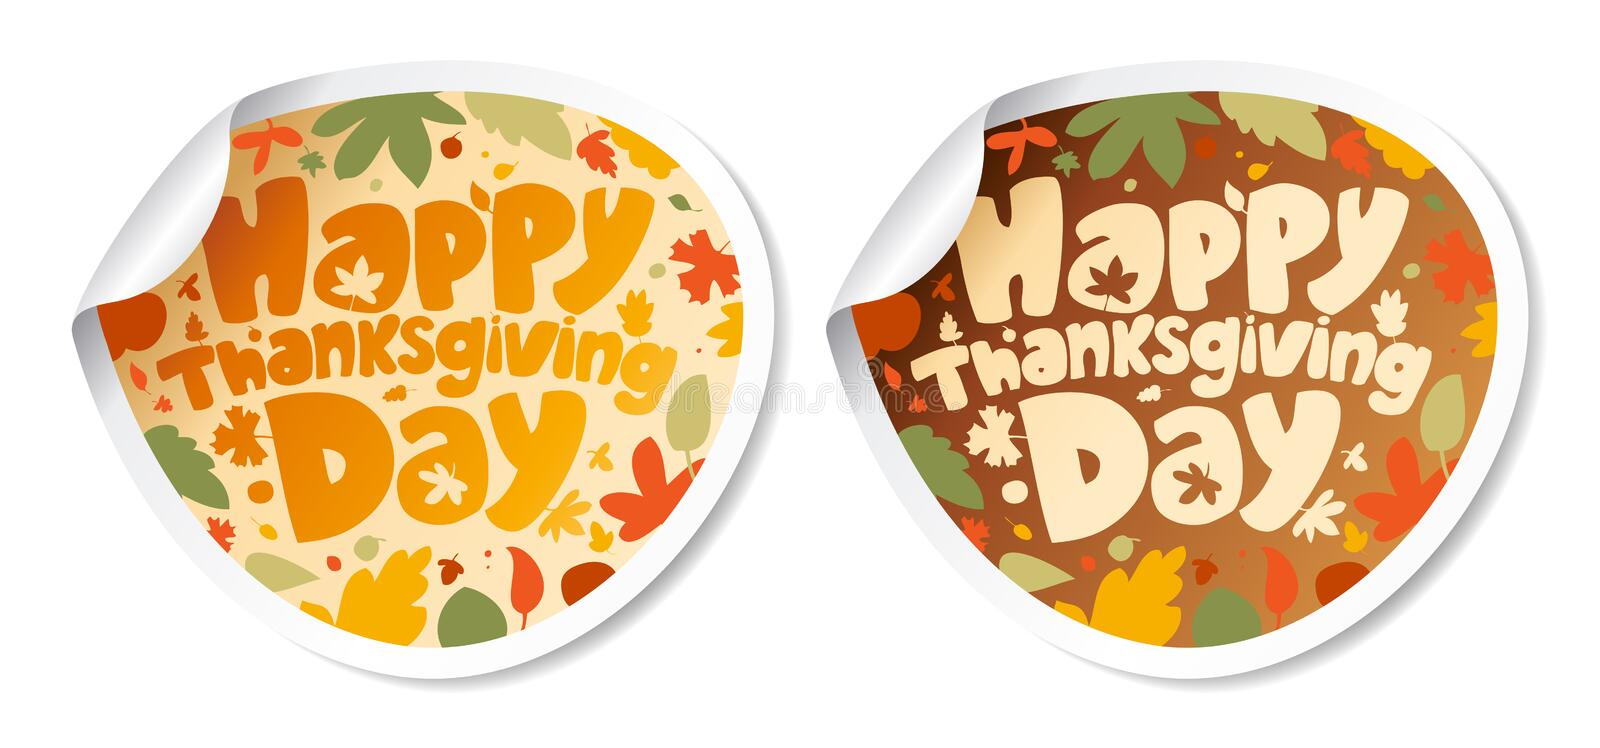 Thanksgiving Day stickers. Happy Thanksgiving Day color stickers